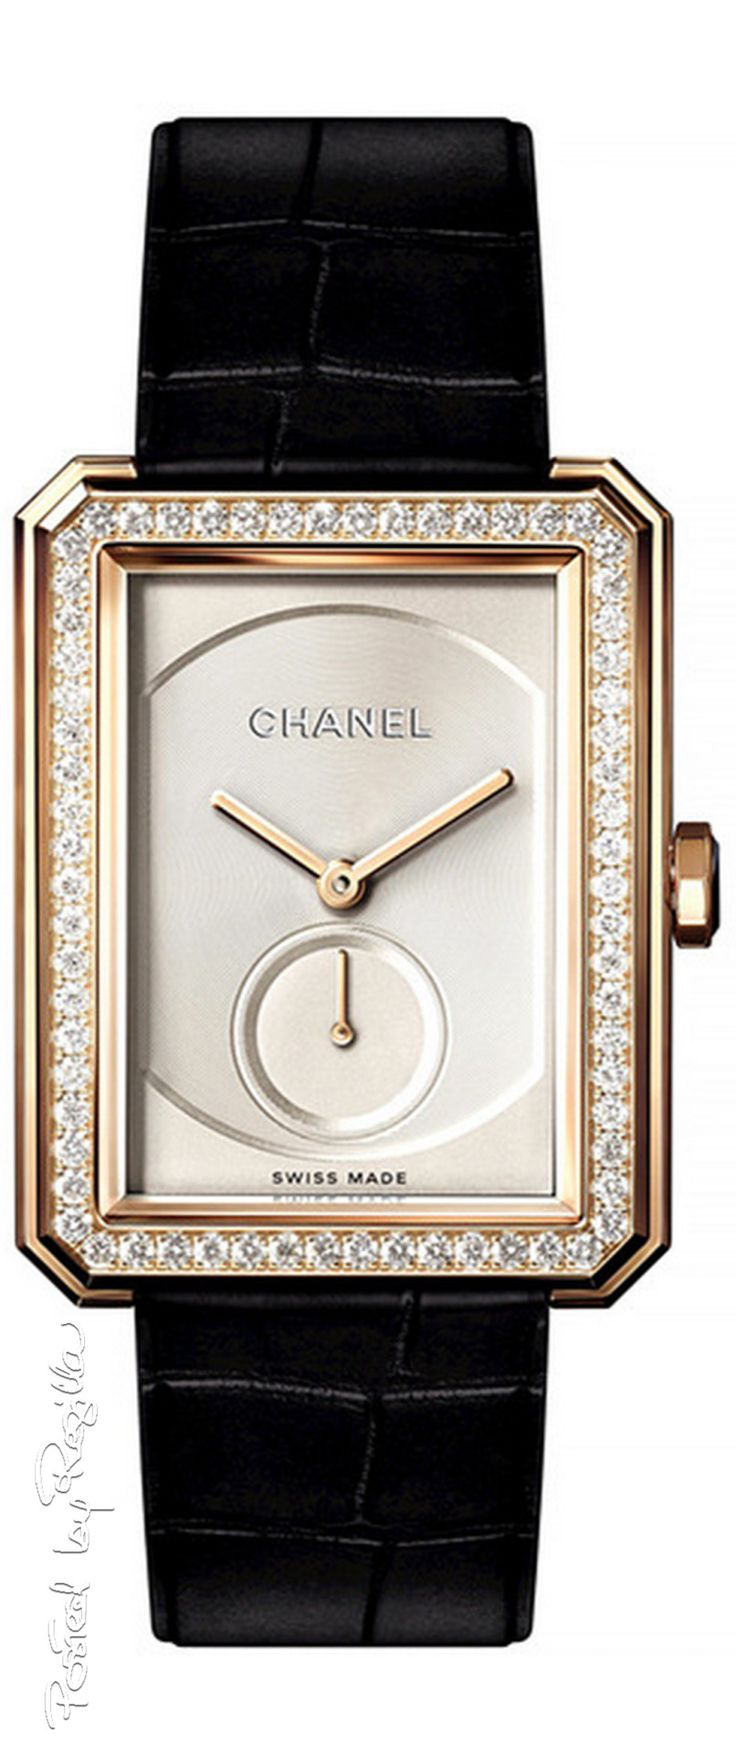 Regilla ⚜ Chanel.  Via @innochka2. #Chanel #watches